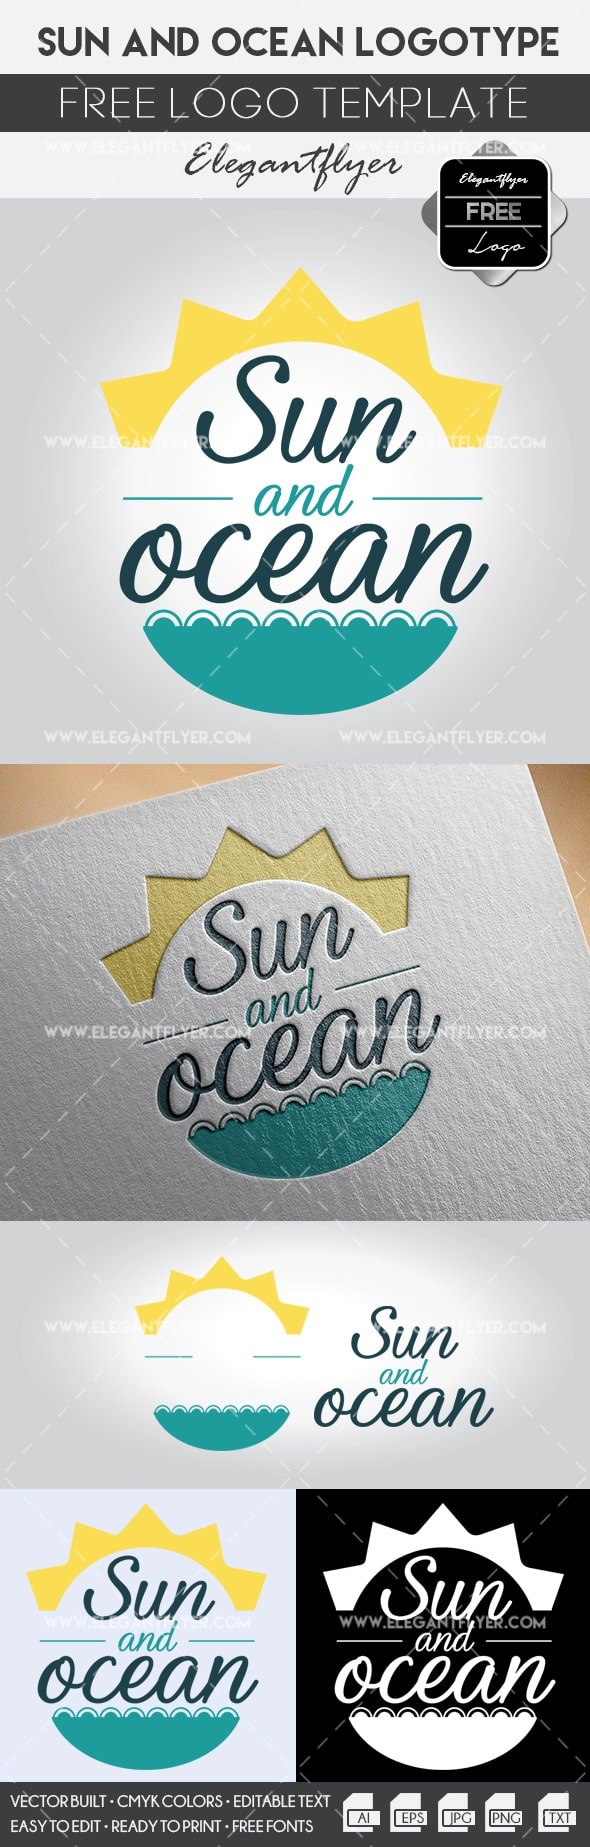 Sun and Ocean – Free Logo Template